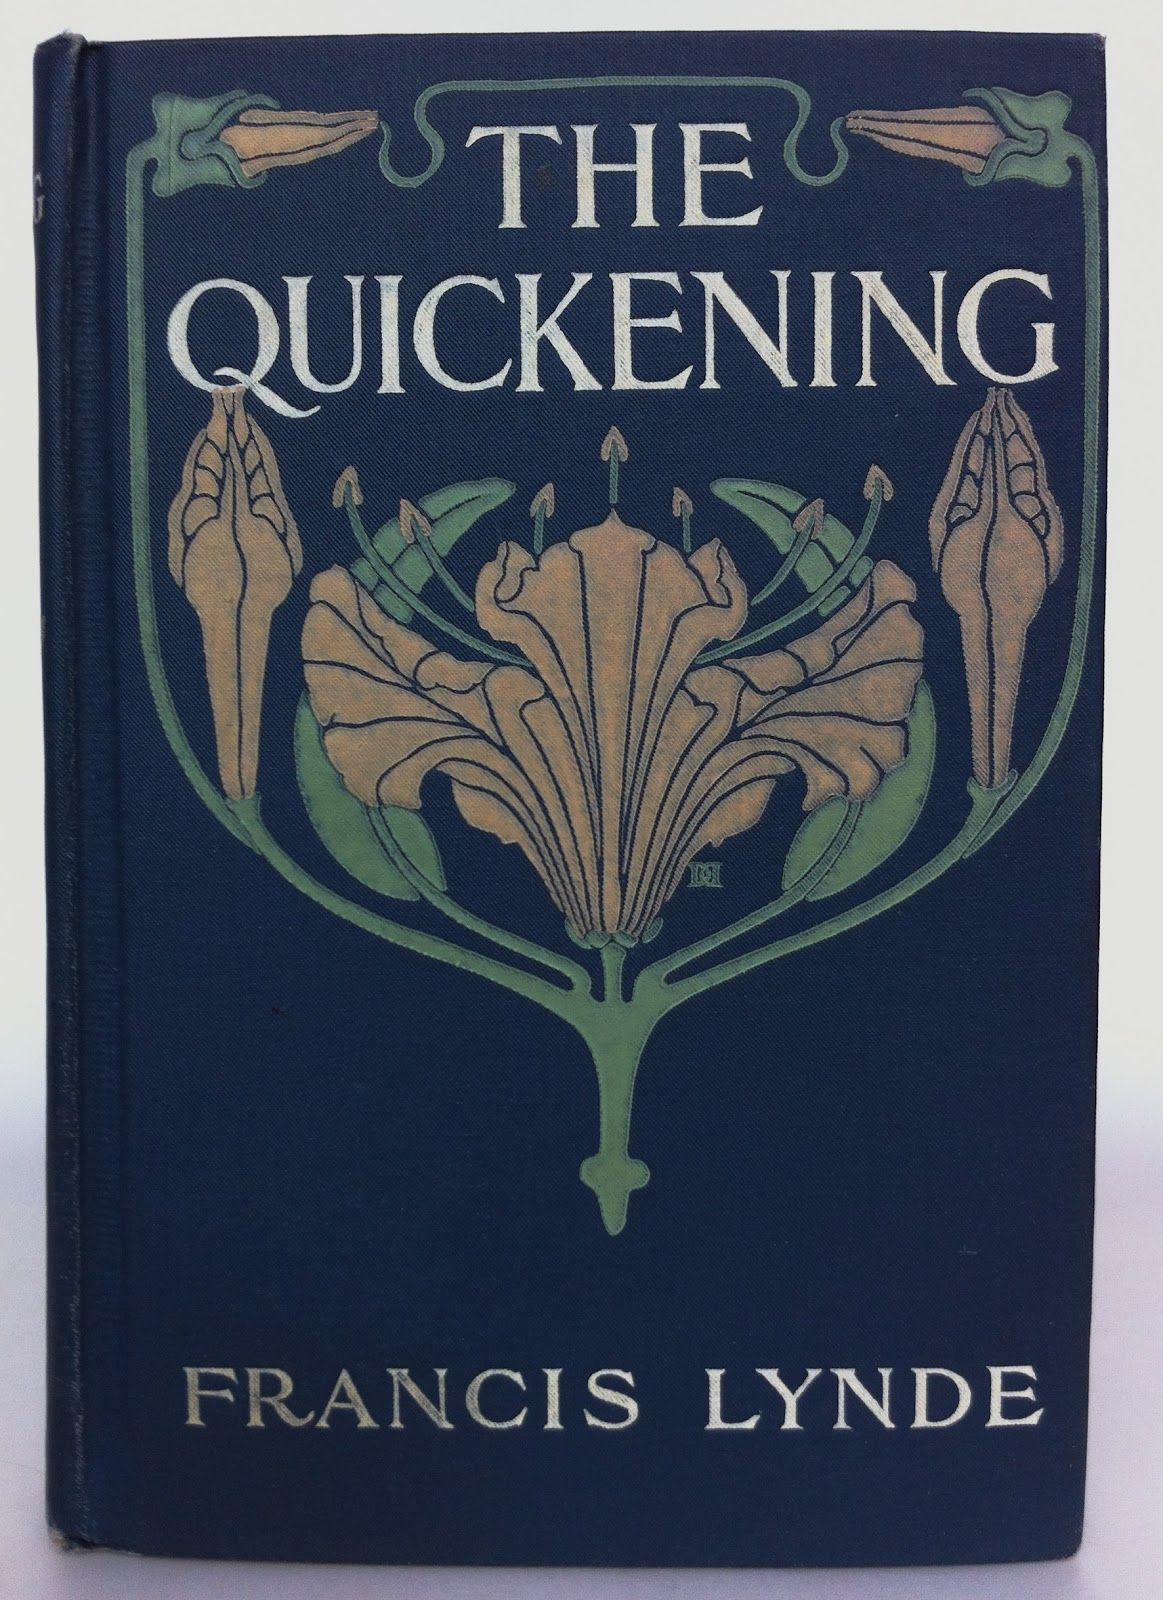 The Quickening by Francis Lynde Indianapolis The Bobbs-Merrill Company 1906 (March) Beautiful Antique Books